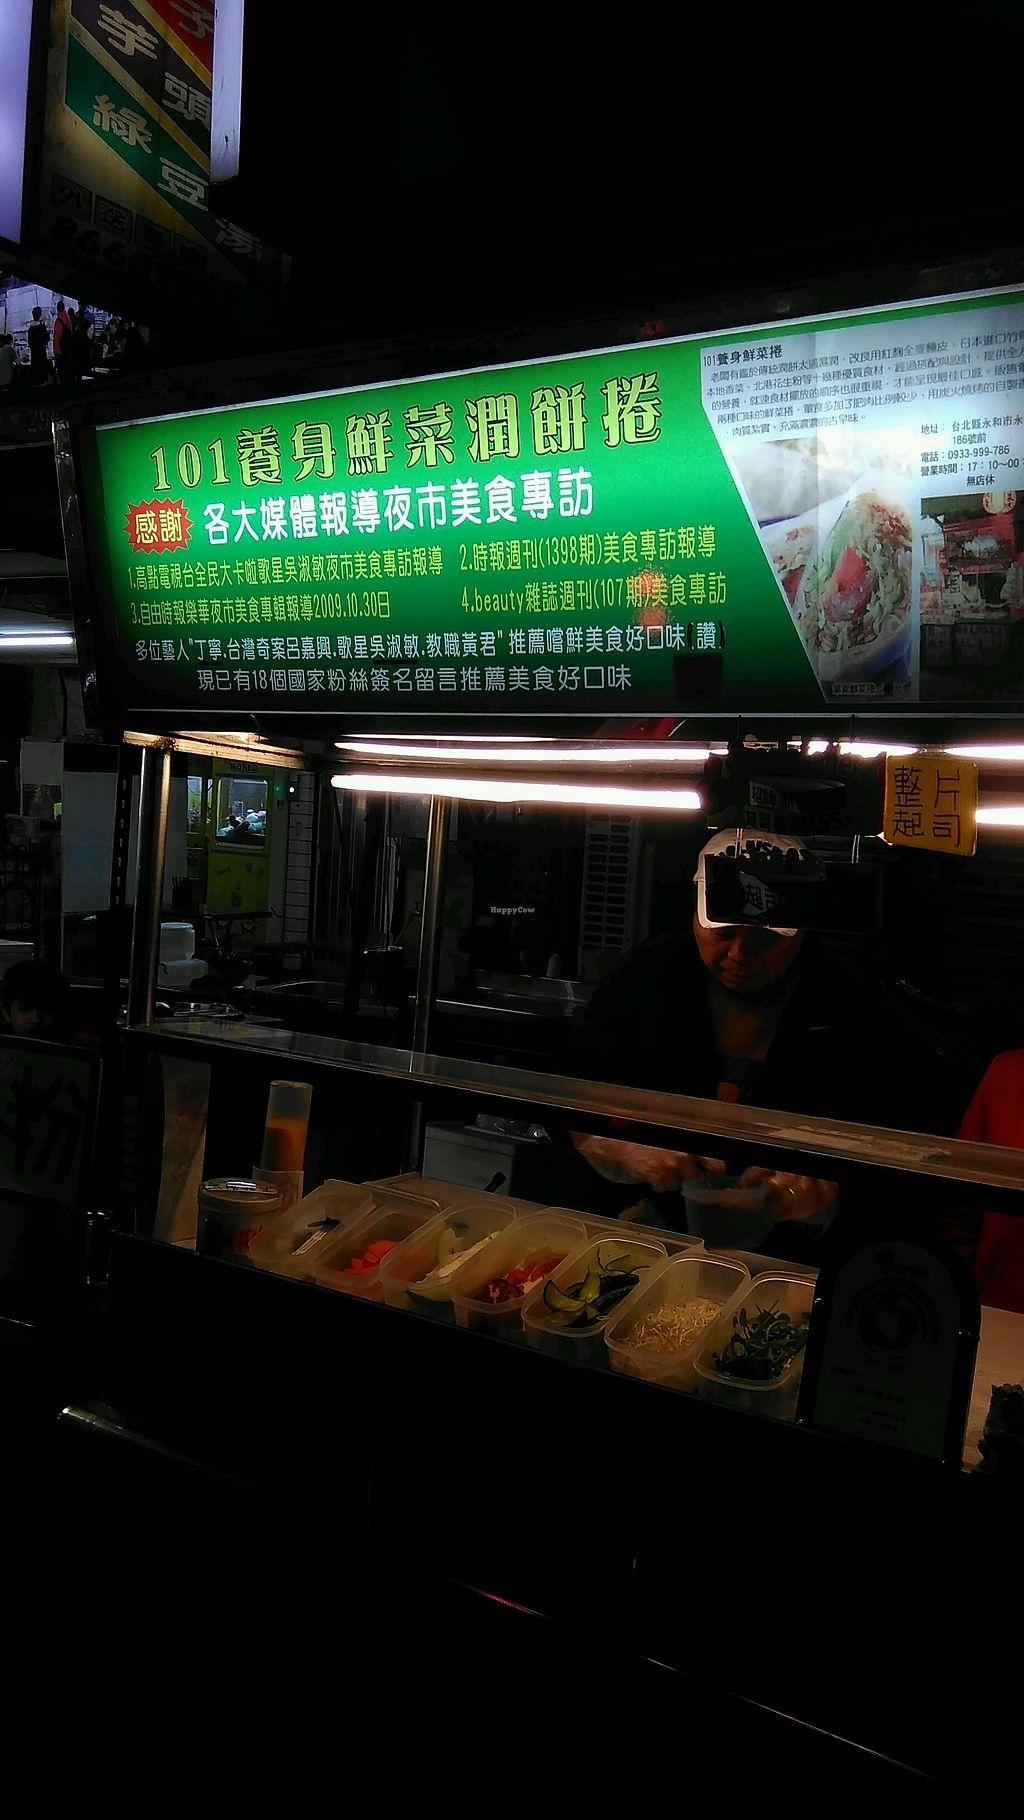 """Photo of 101 Fresh Vegetable Wraps Stall  by <a href=""""/members/profile/CarinaJ.Rother"""">CarinaJ.Rother</a> <br/>it's wraps <br/> February 12, 2018  - <a href='/contact/abuse/image/109584/358142'>Report</a>"""